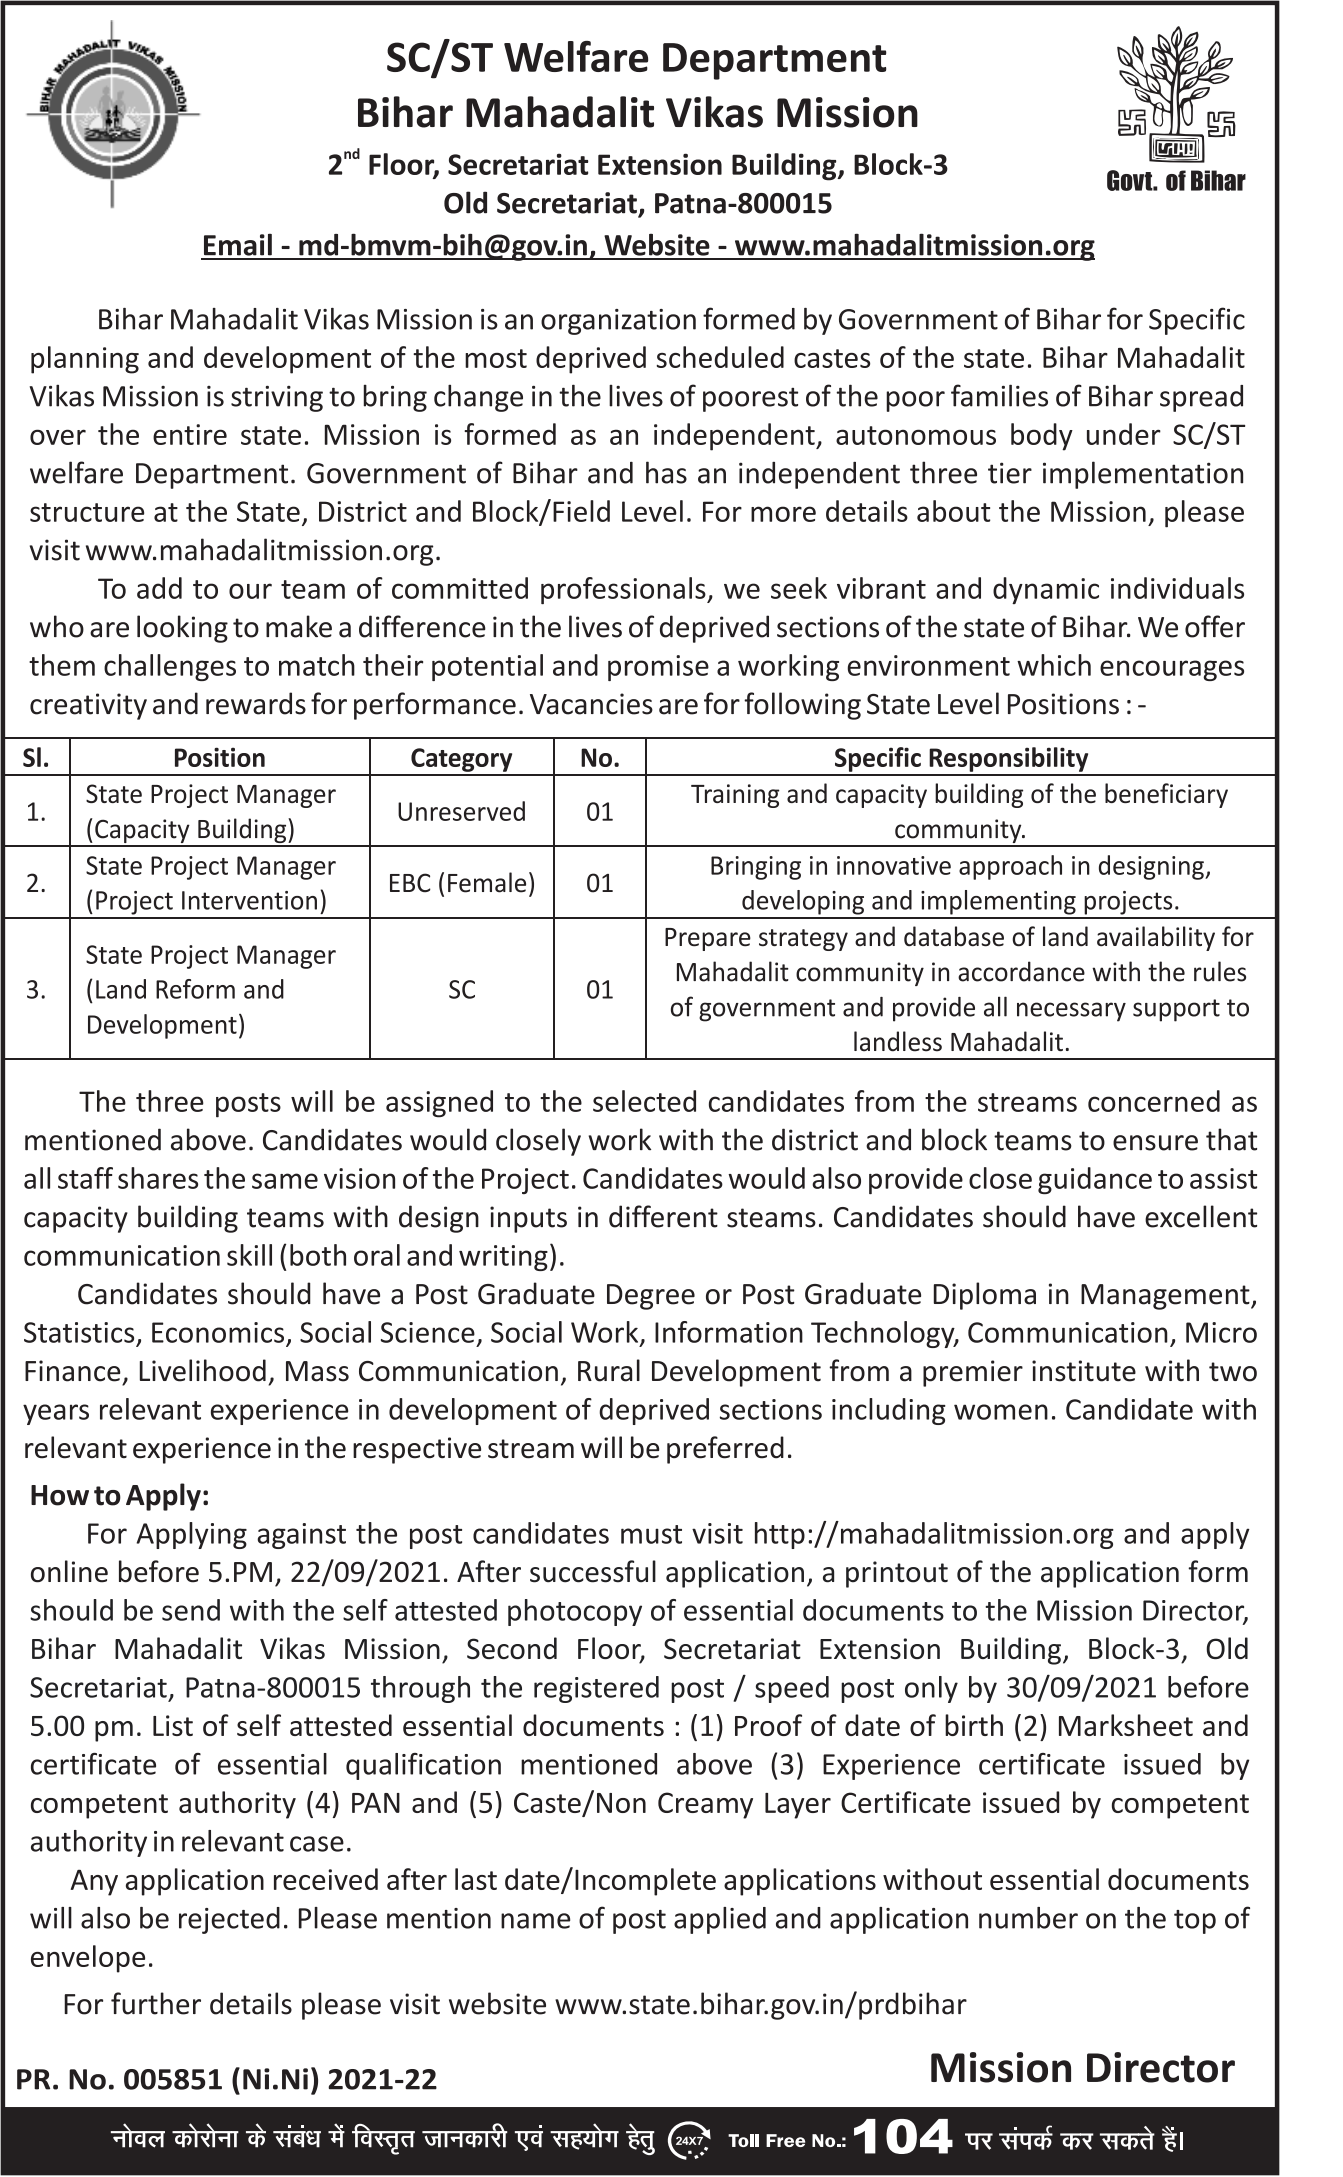 Recruitment for the post of State Project Manager (Capacity Building), State Project Manager (Project Intervention) & State Project Manager (Land Reform and Development) in Bihar Mahadalit Vikas Mission